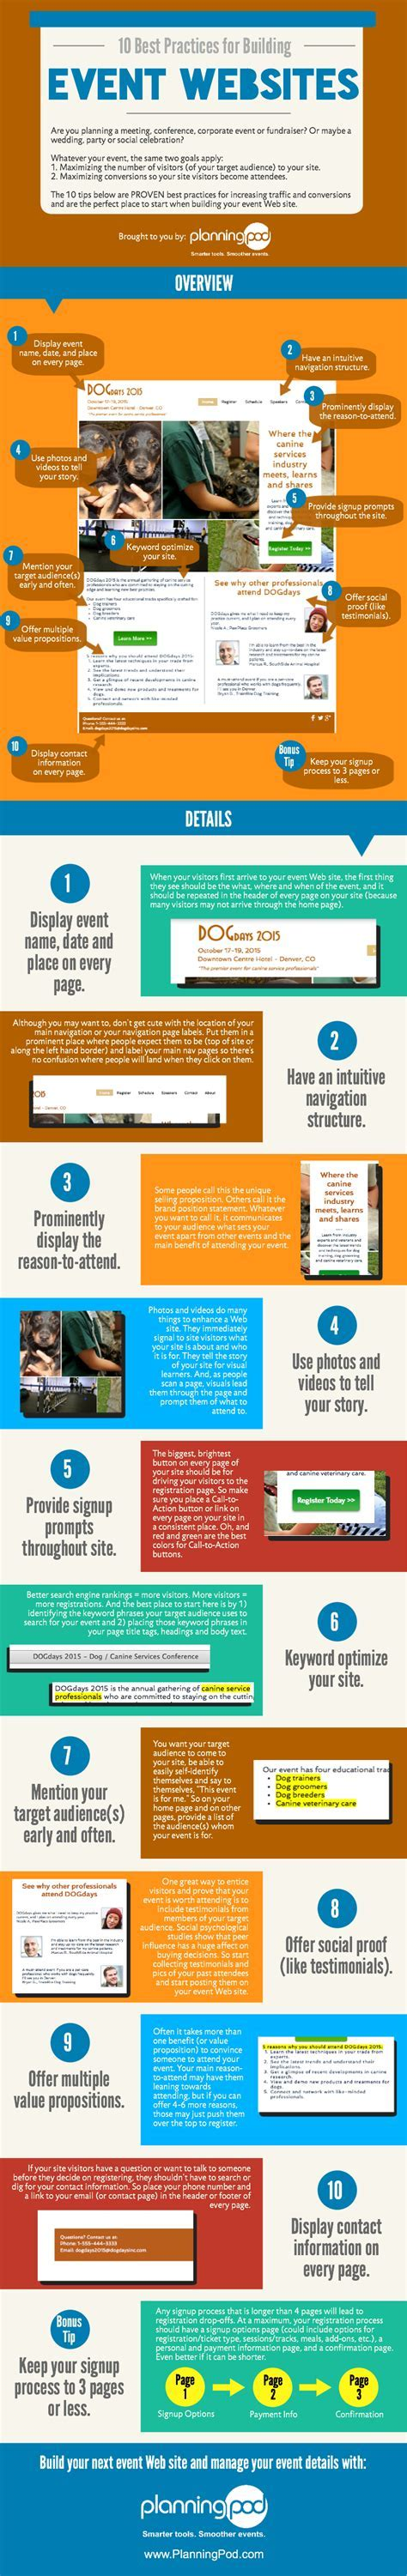 10 best practices for building an event promotion website